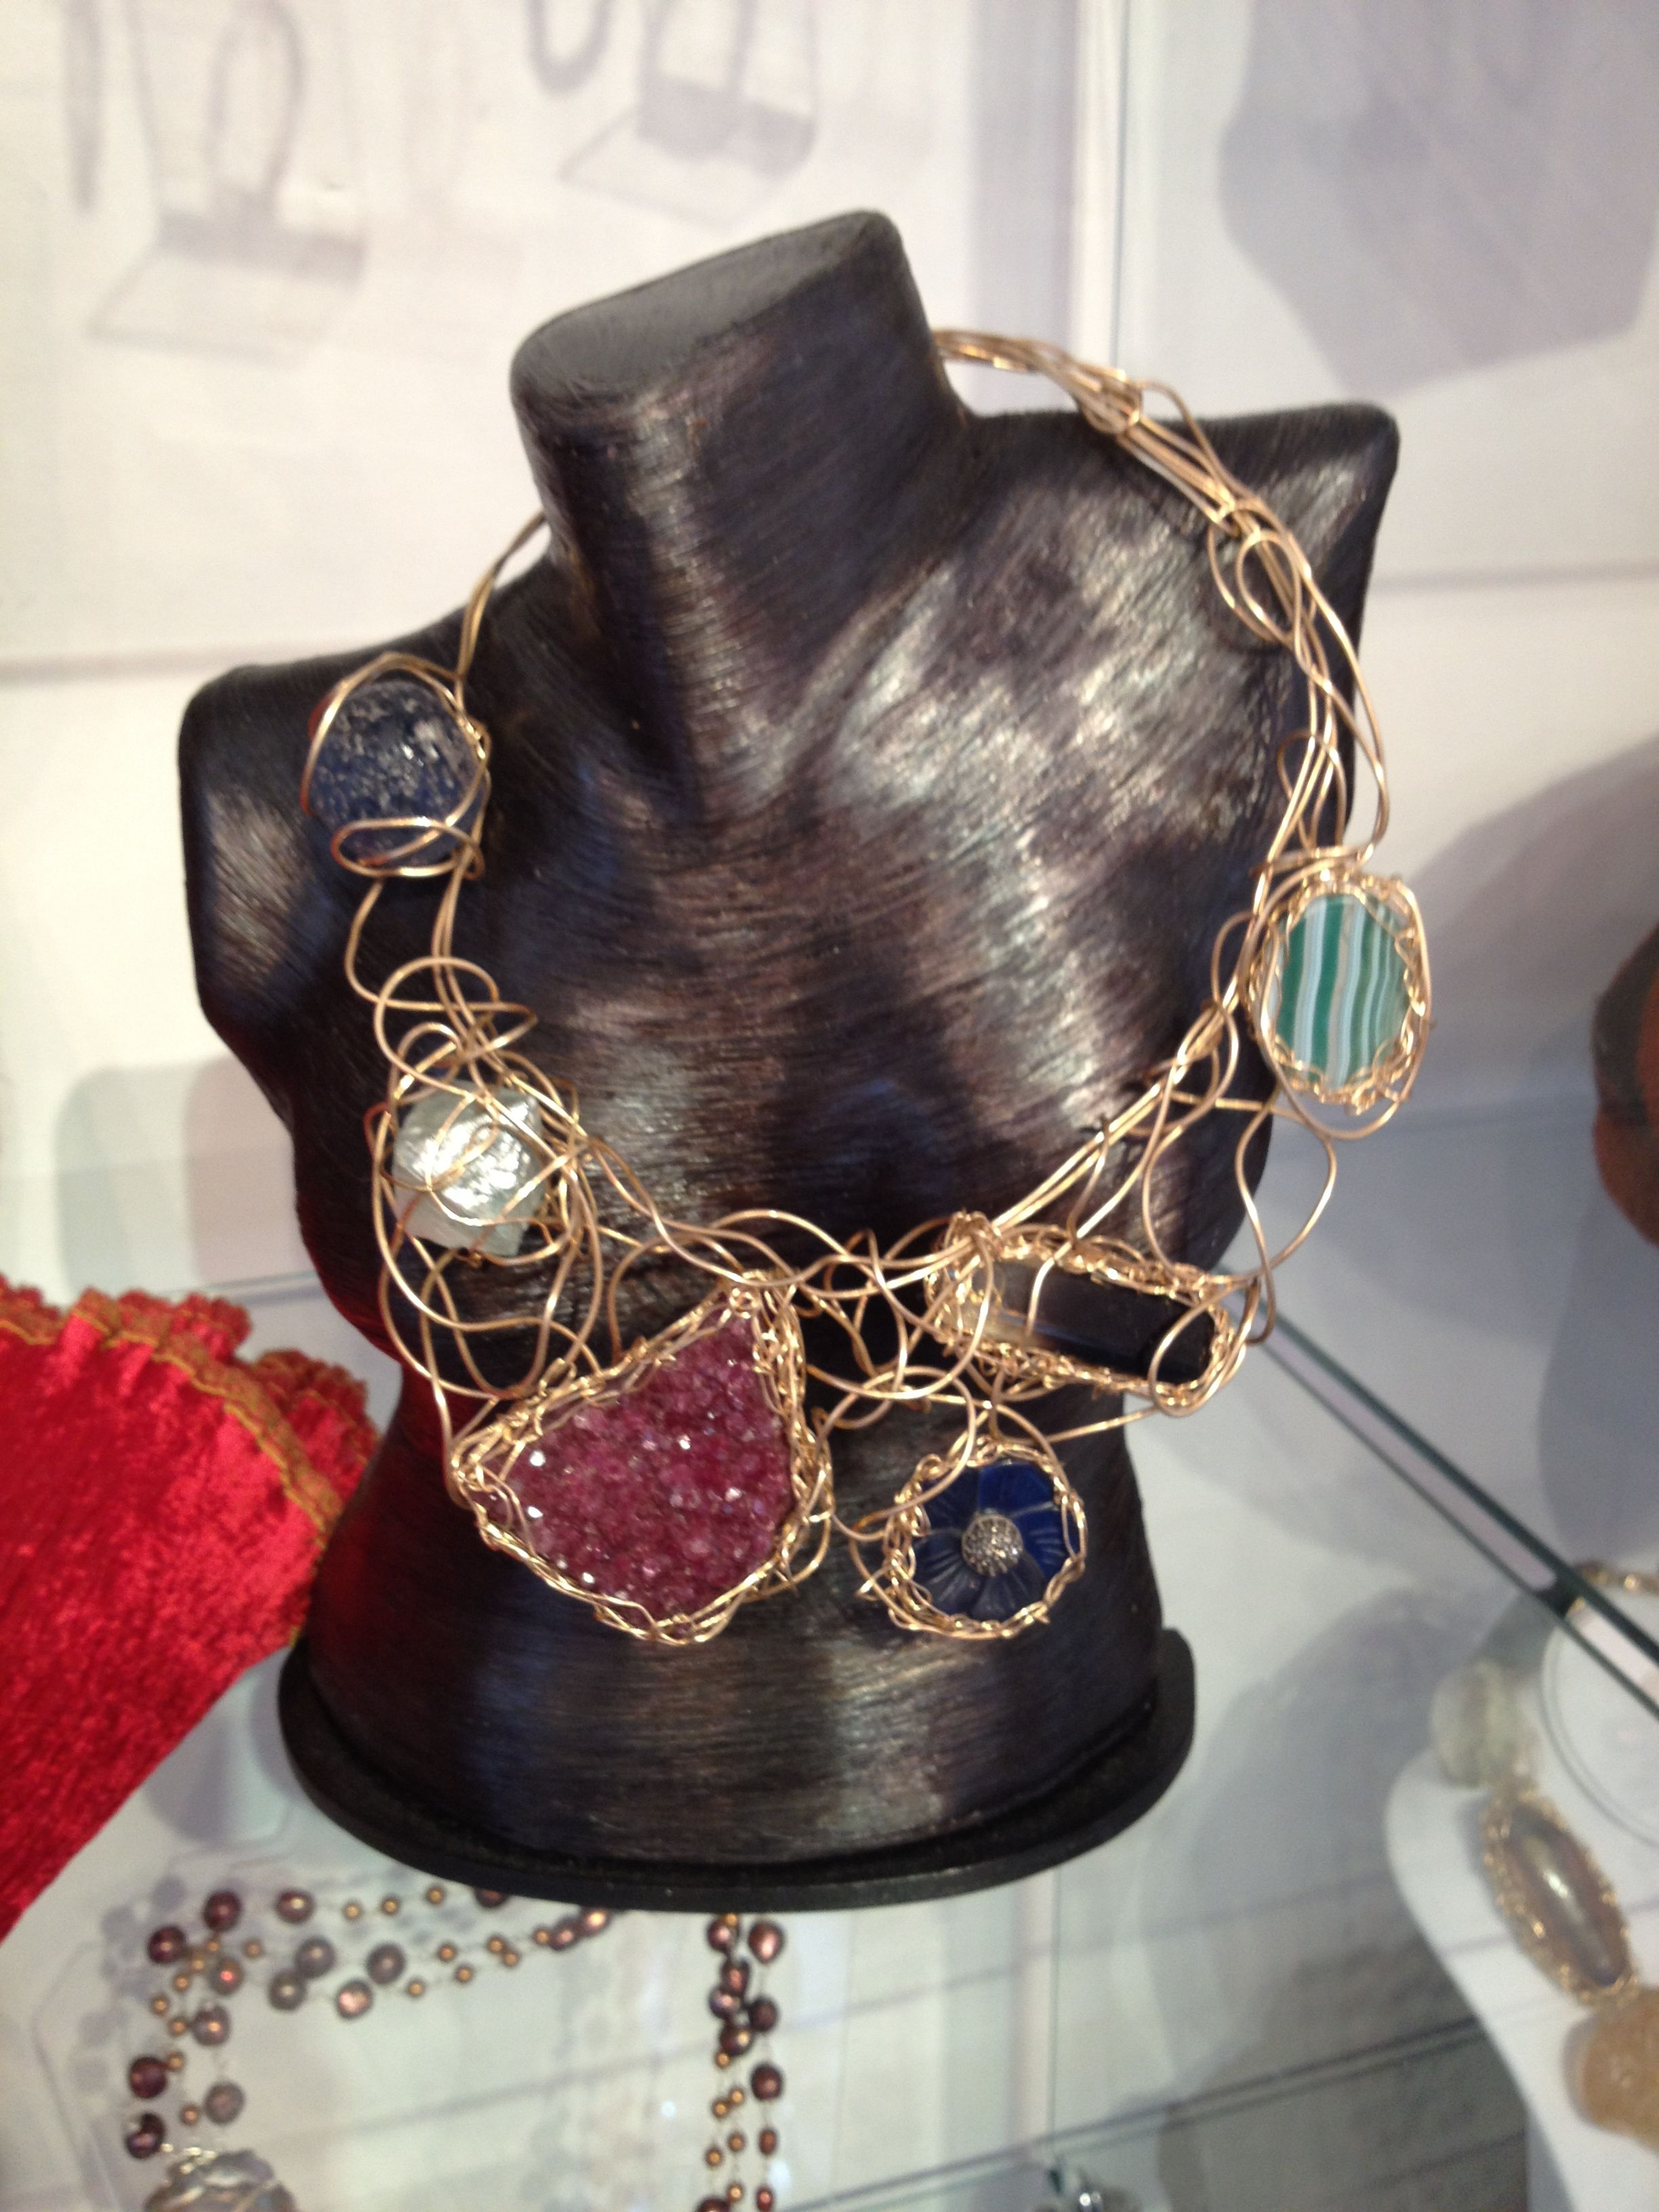 necklace 14K gold filled wire weave with flourite, cambodian blue stone, moss agate cab, bi-color smoky quartz, rough amethyst